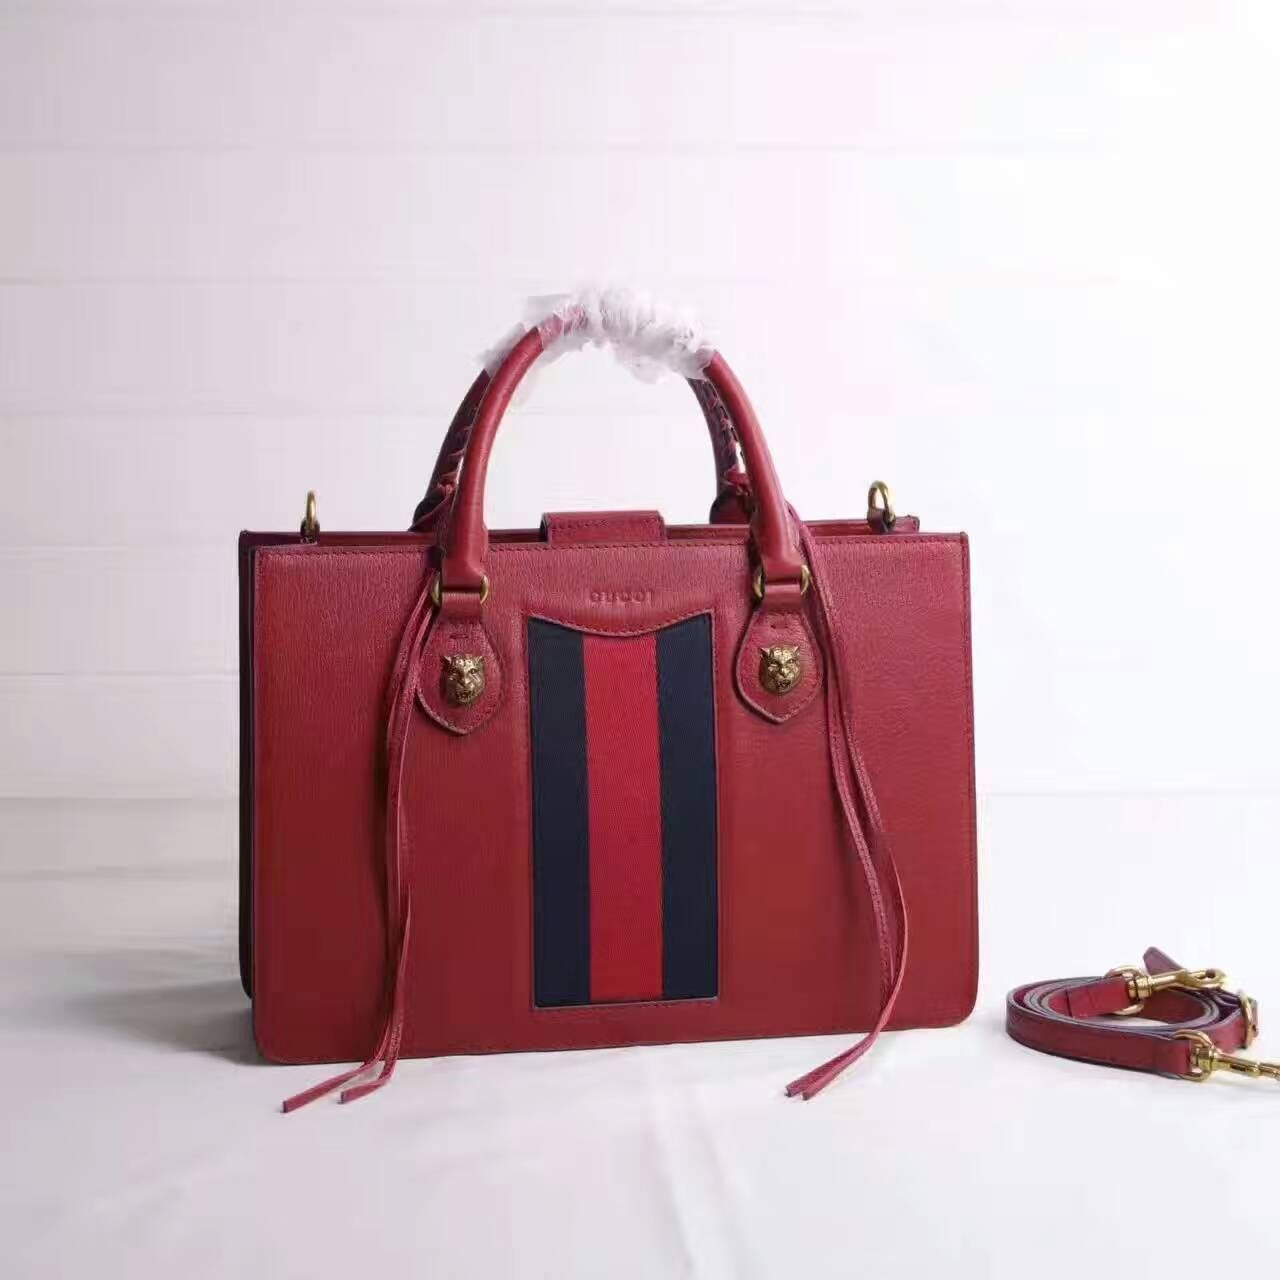 ccae95effb0e Gucci Animalier Animalier leather top handle bag Green/red/green wool web  sewn under the leather 431277 size:32x22x10cm G4 whatsapp:+8615503787453